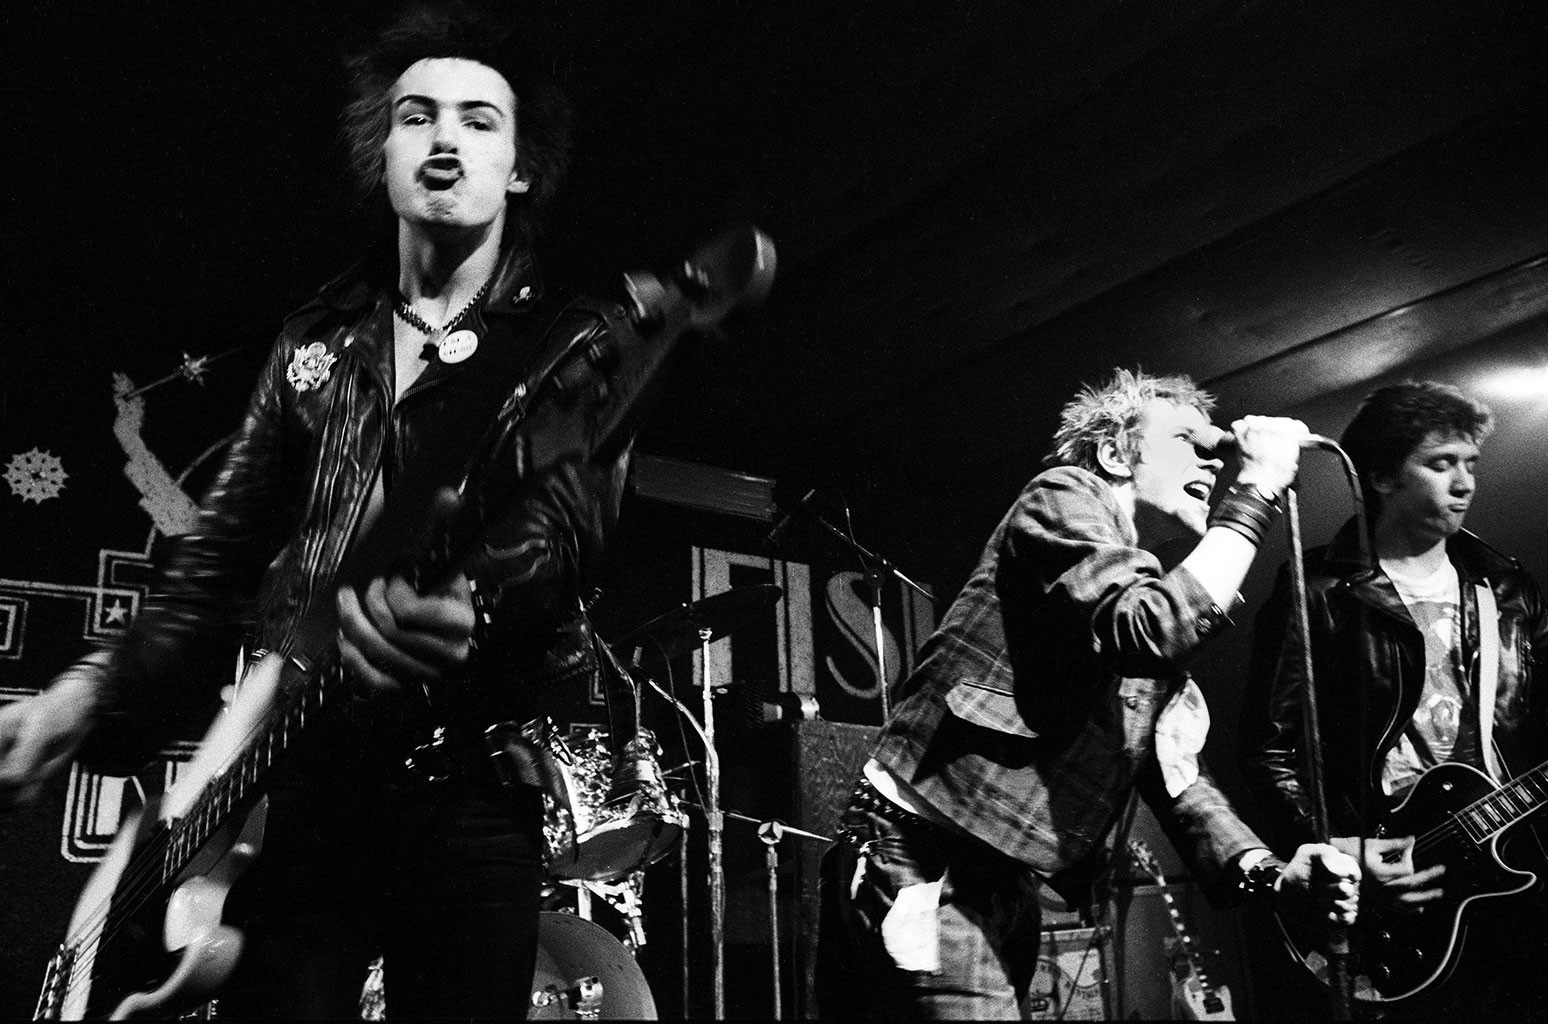 Sex Pistols Limited Series From Danny Boyle a Go at FX